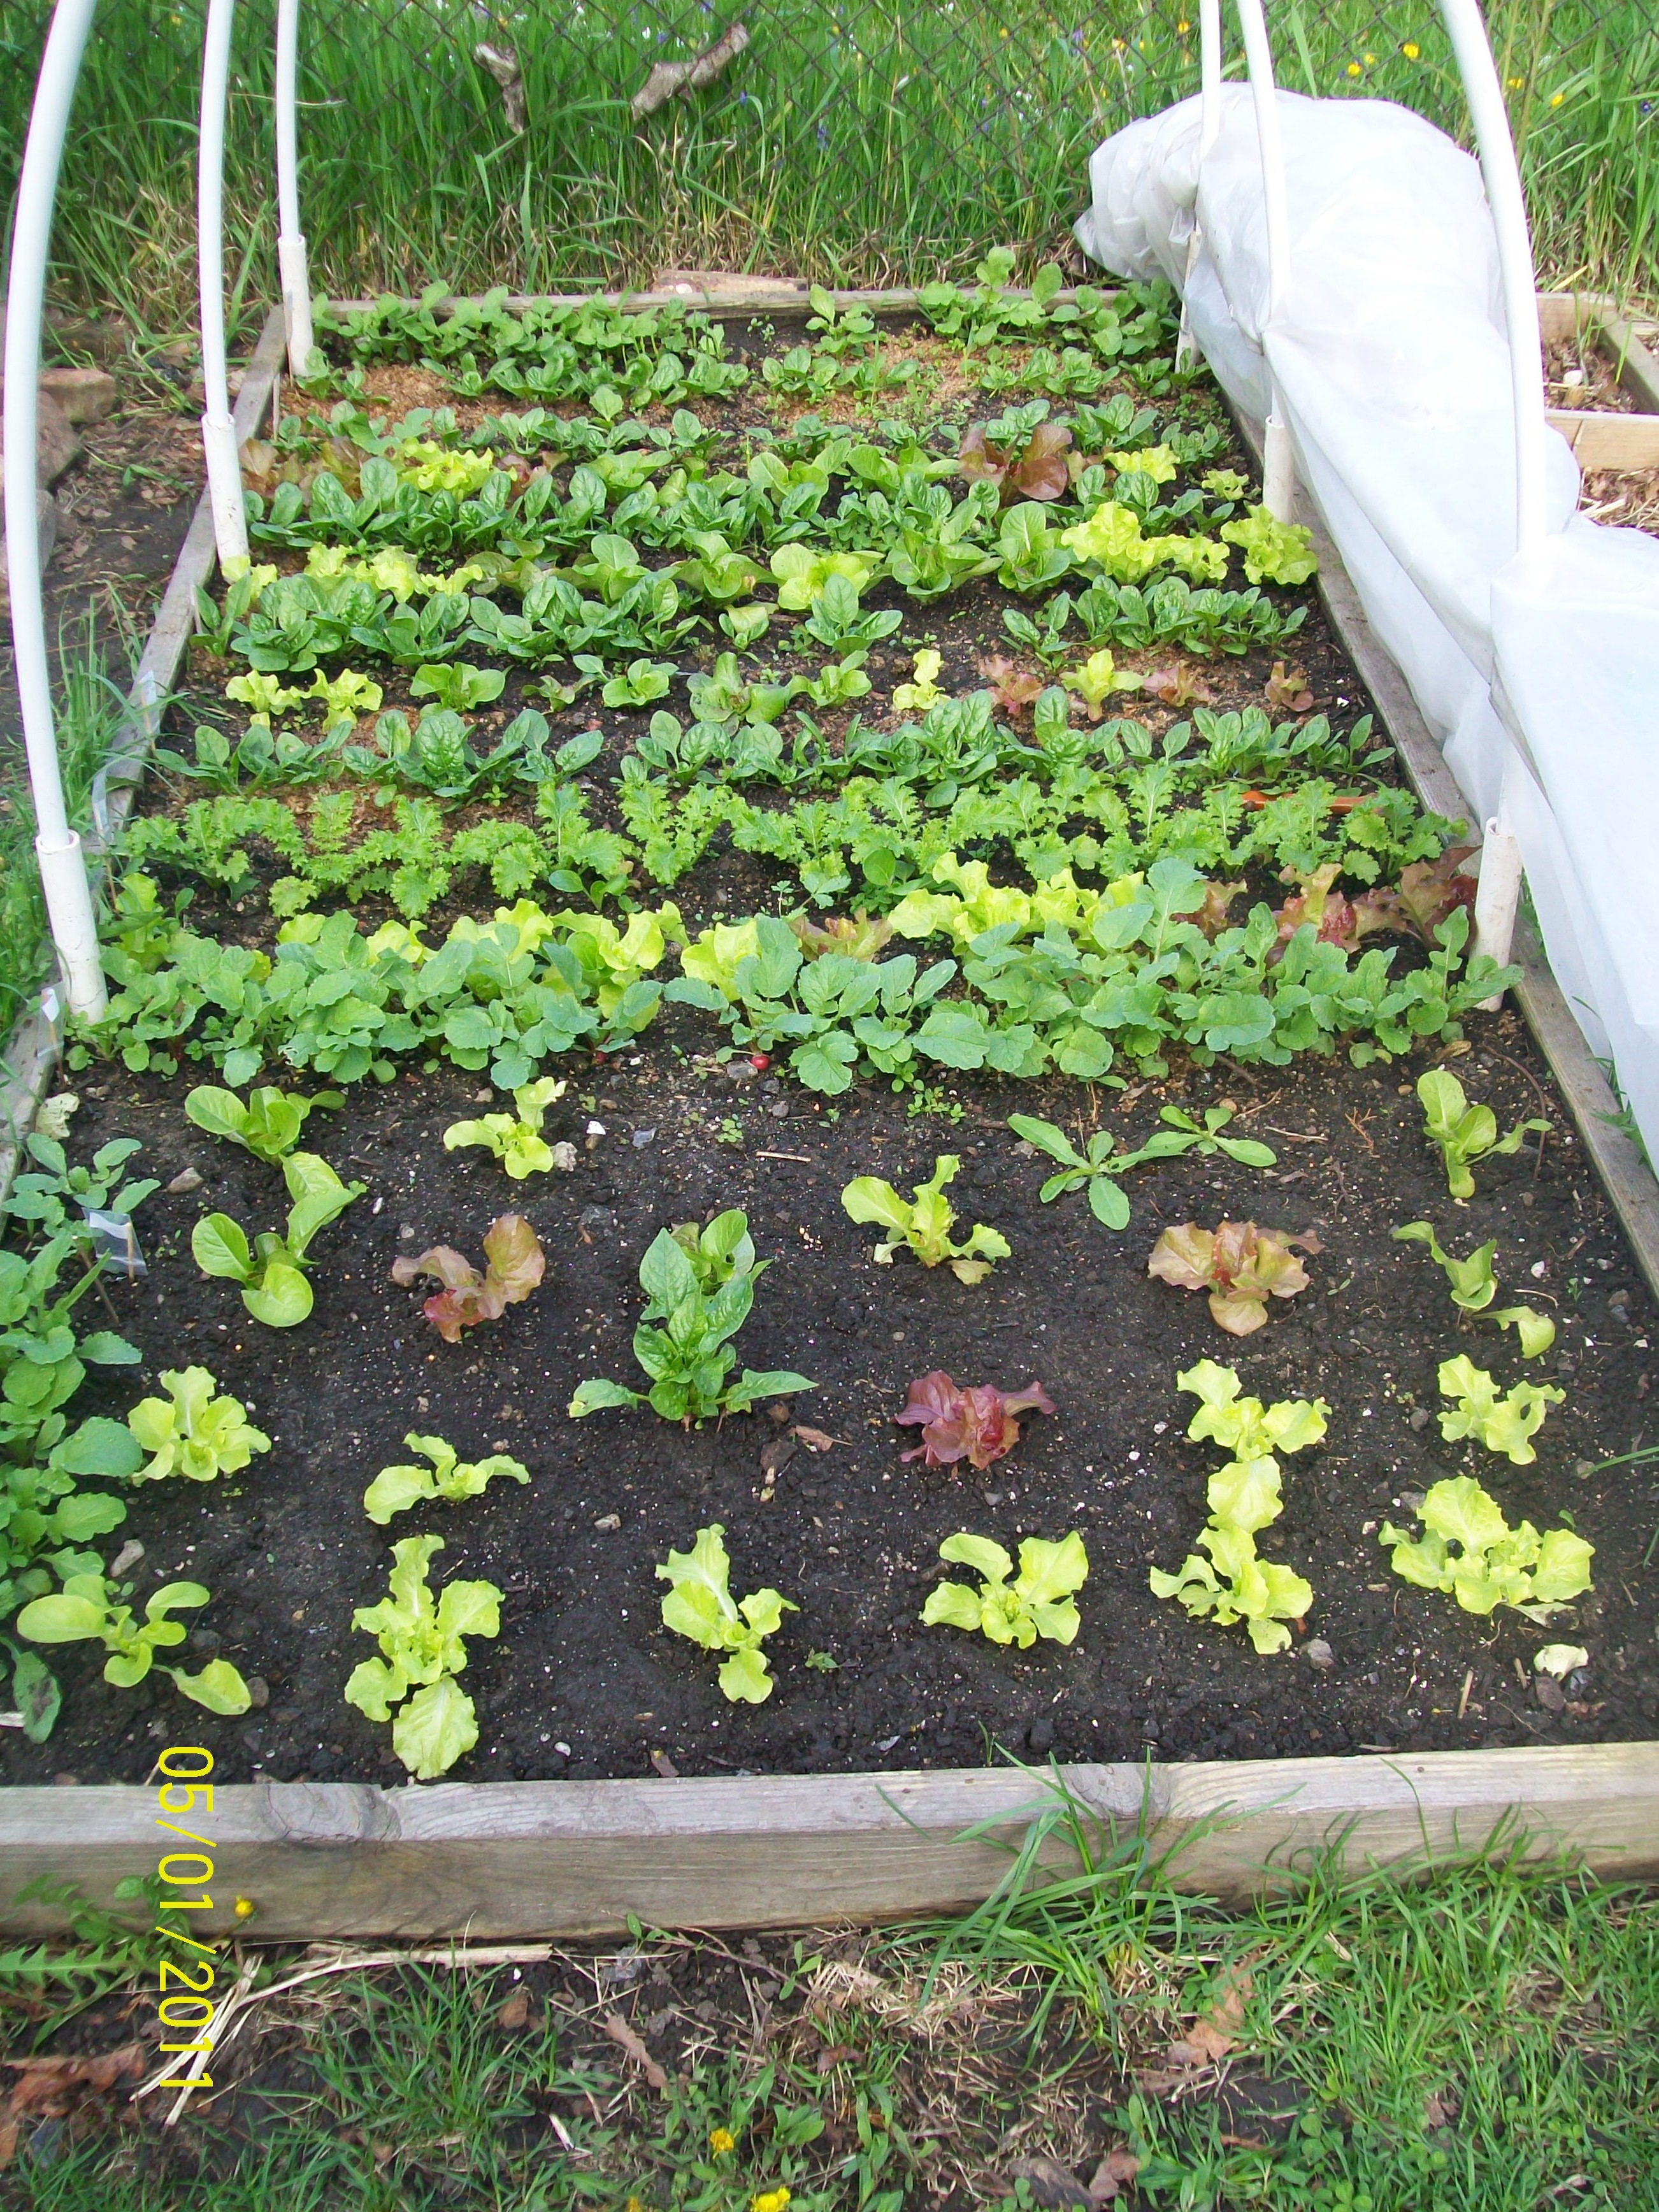 how to keep bugs off lettuce in garden